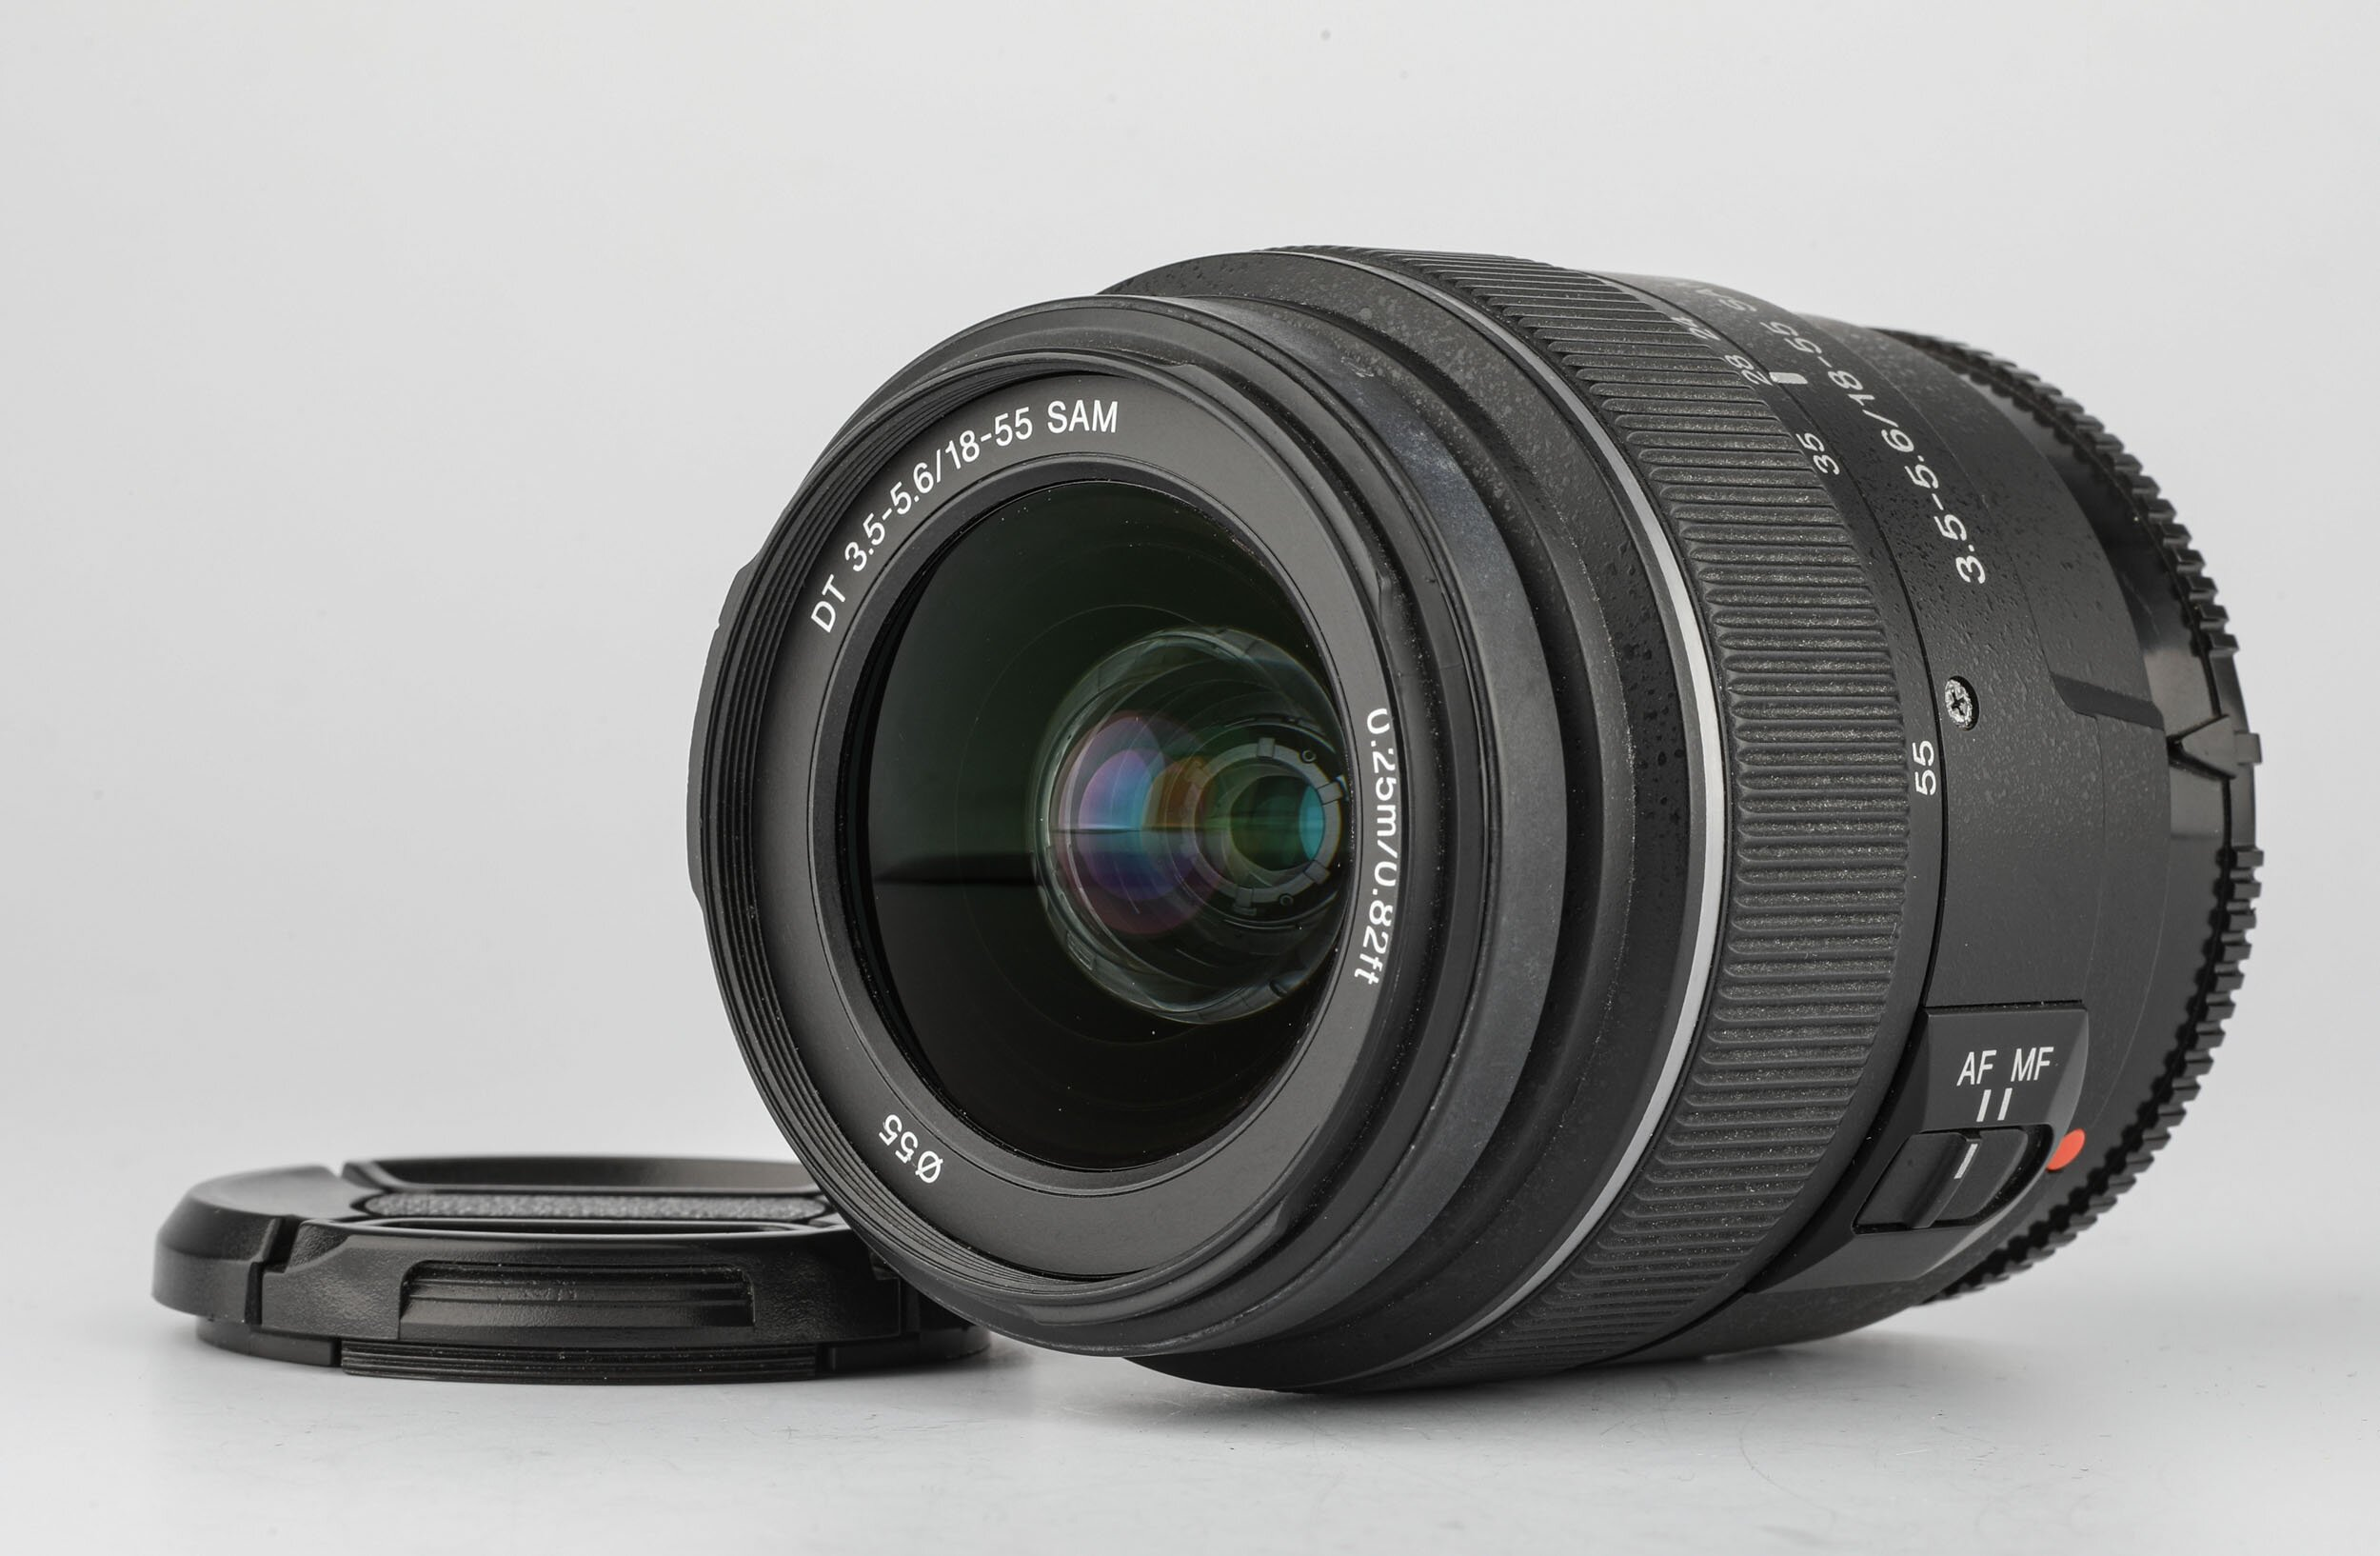 Sony DT 18-55mm F3.5-5.6 SAM A Mount